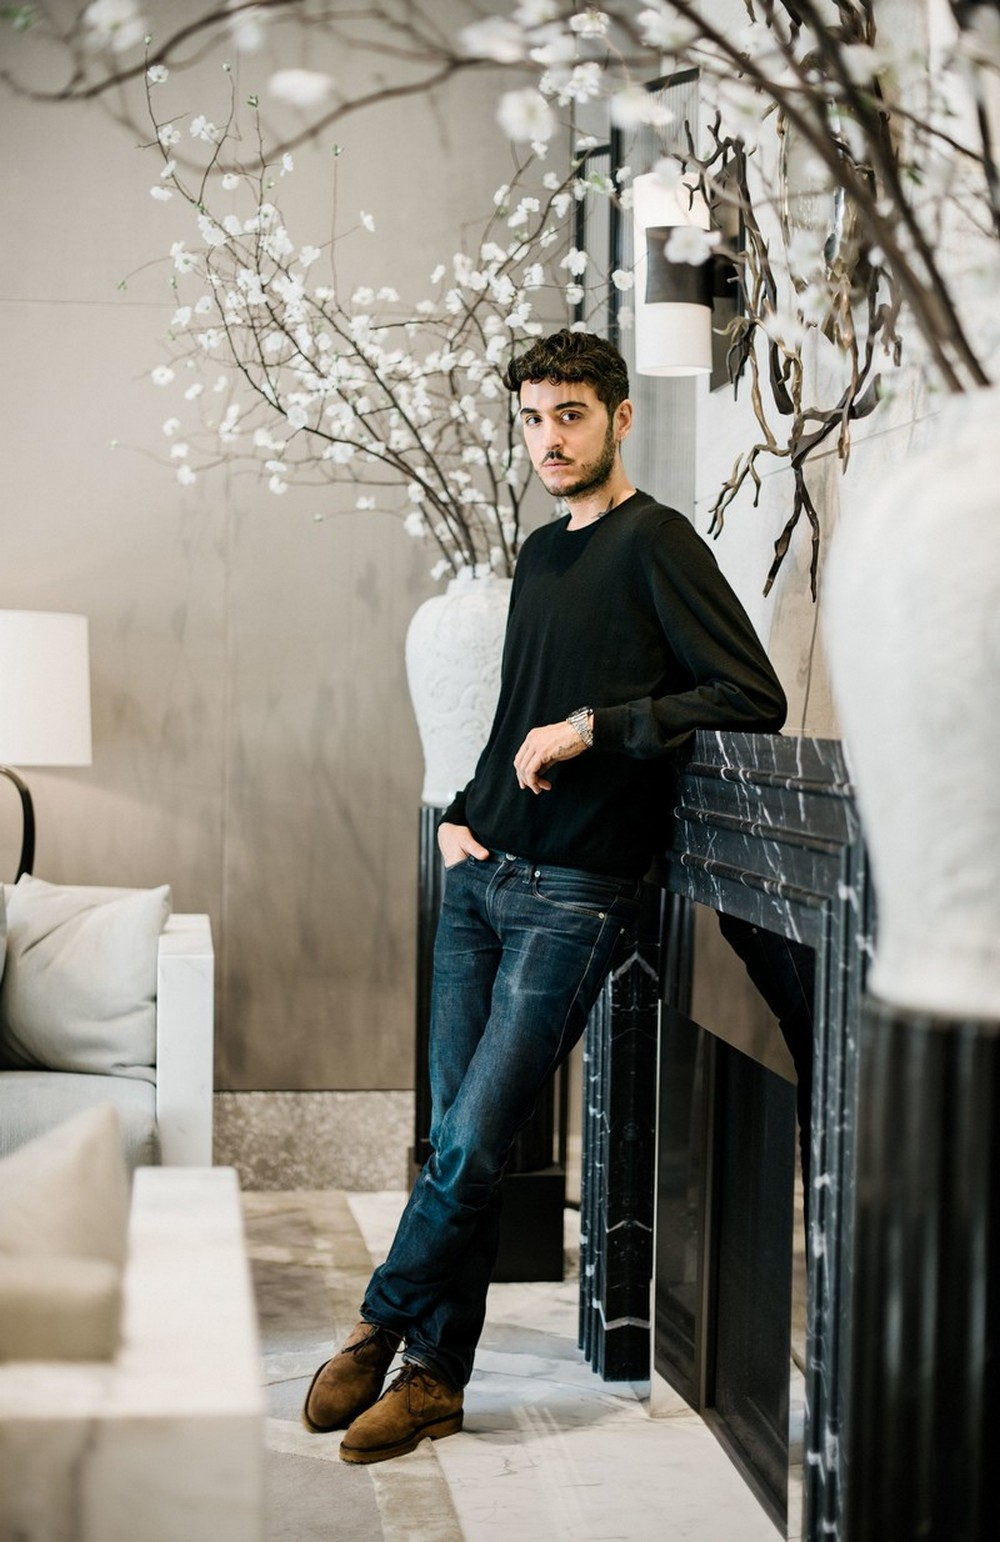 Best Interior Designers: See Who's In This Year's Top 100 (Part II) best interior designers Best Interior Designers: See Who's In This Year's Top 100 (Part II) Best Interior Designers See Whos In This Years Top 100 Part II 29